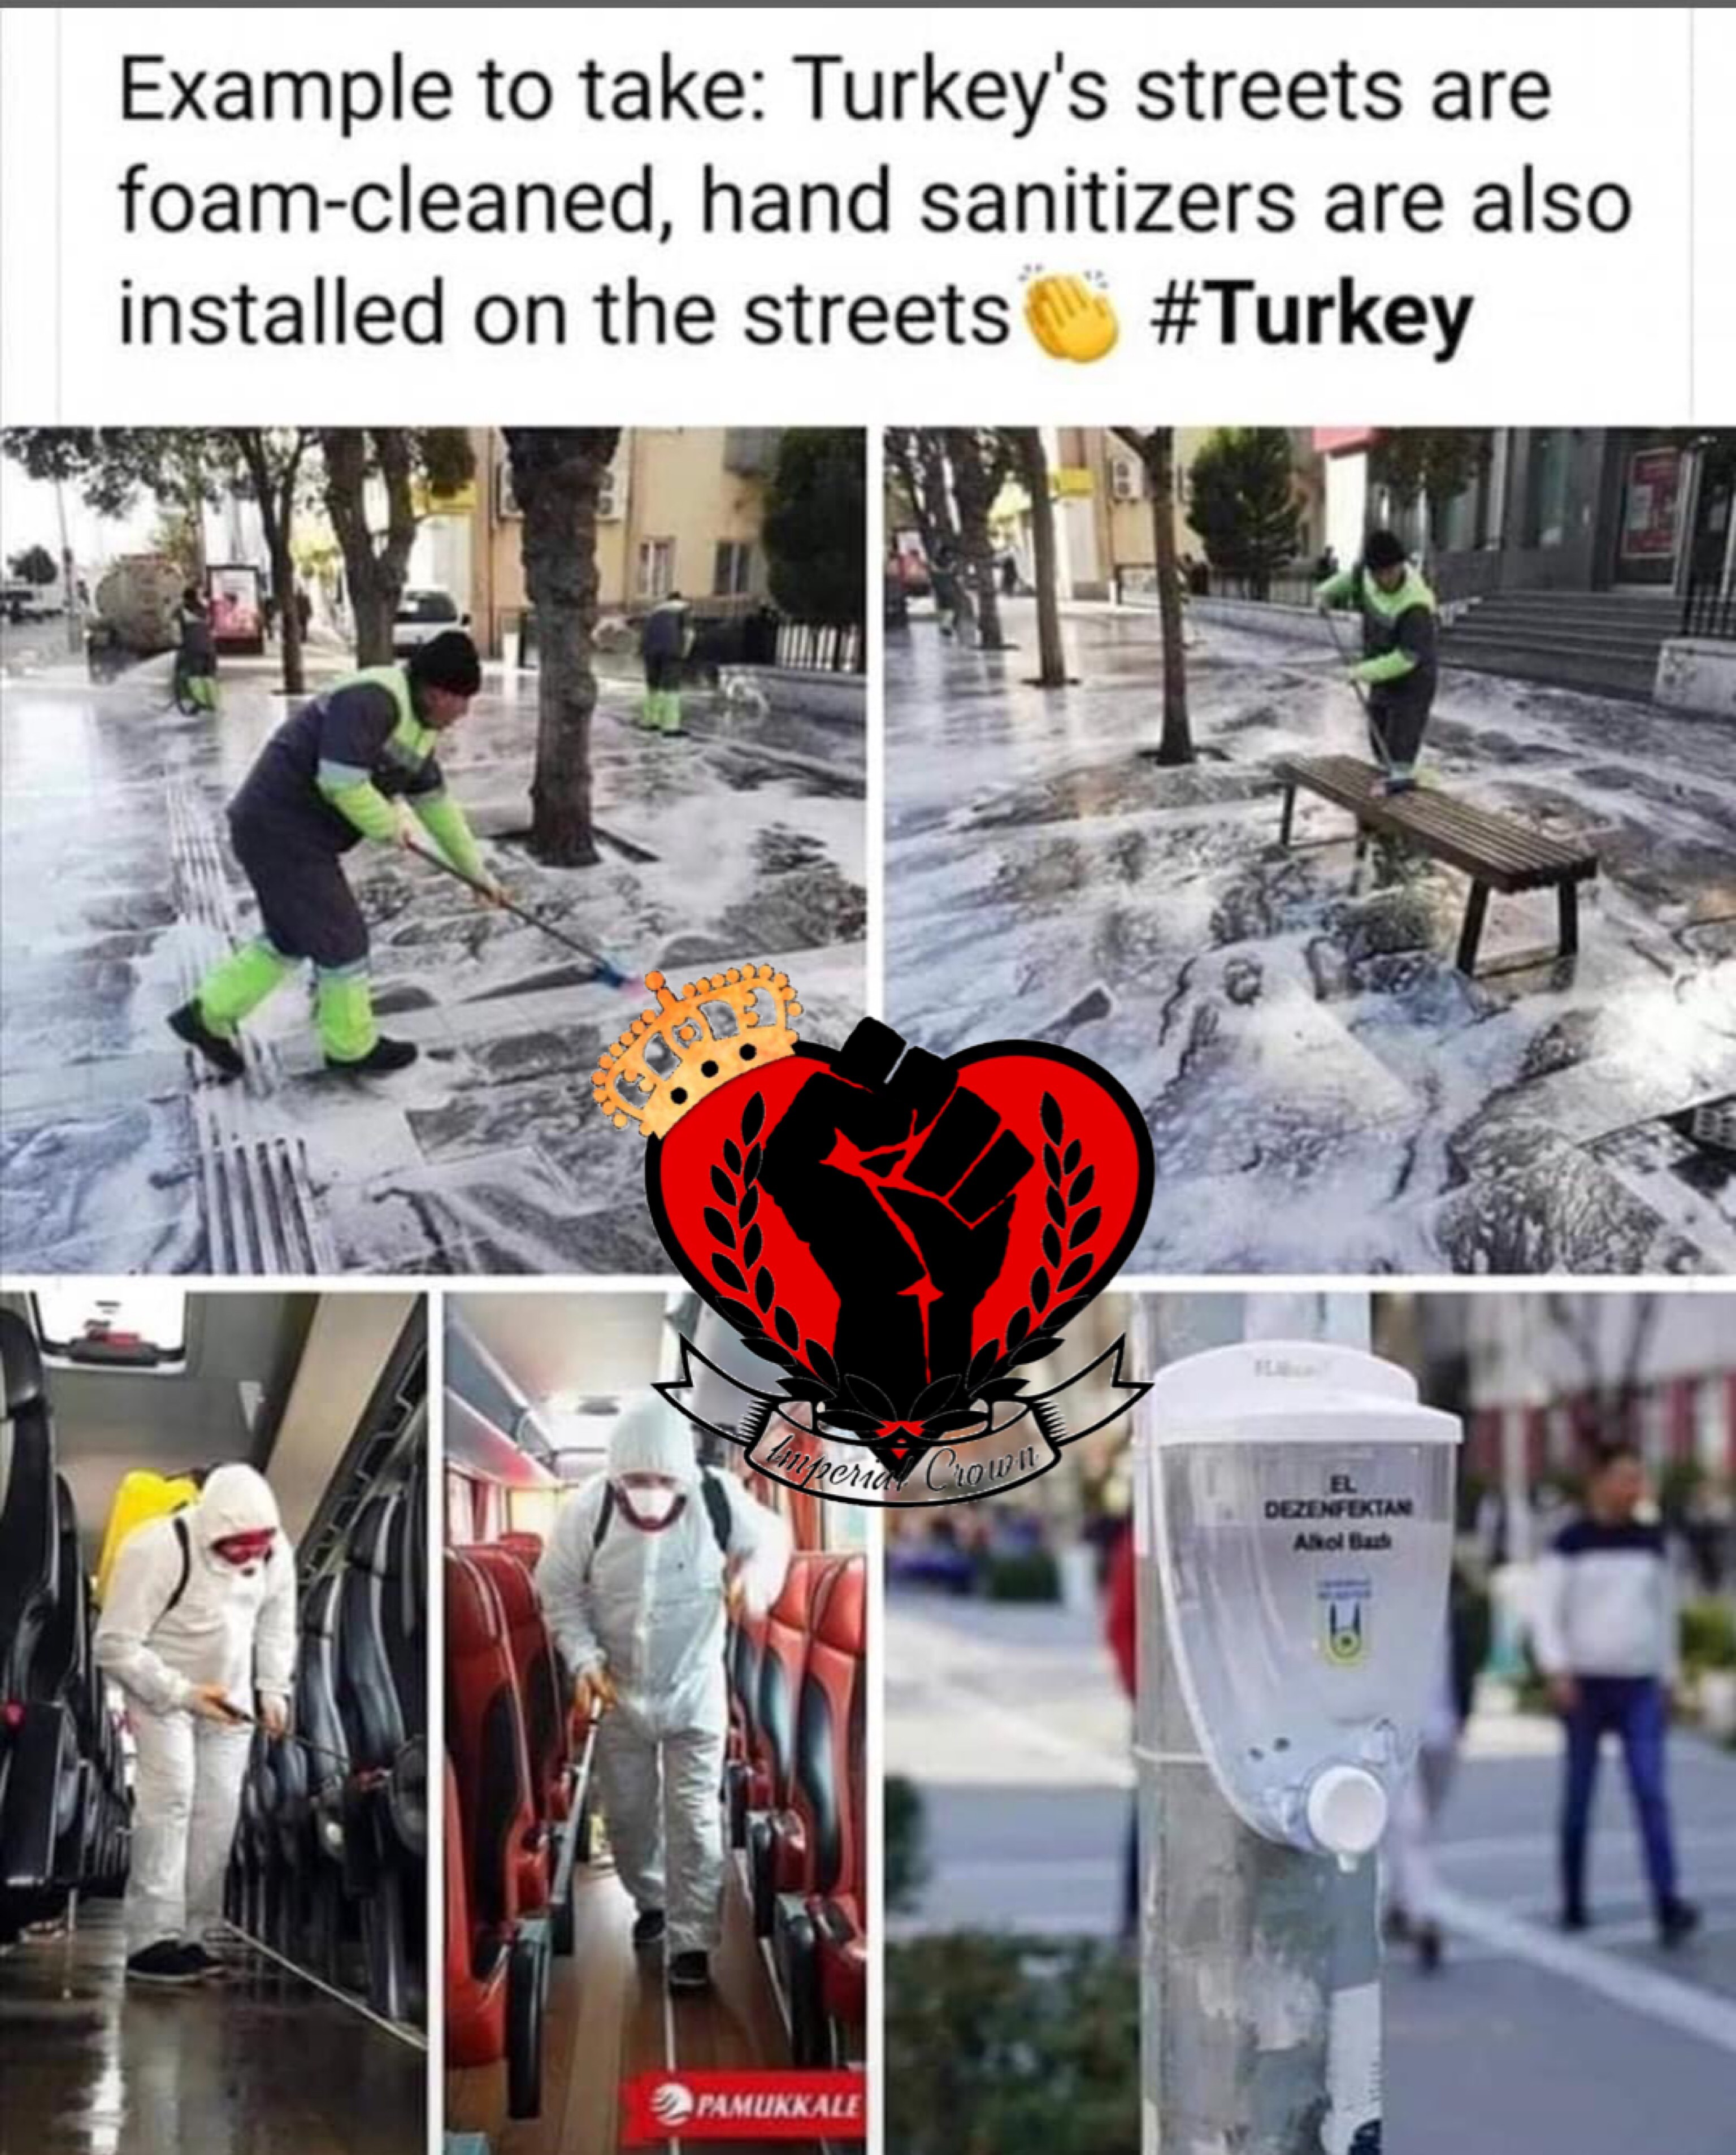 Example to take turkeys streets are foam cleaned hand sanitizers are also installed on the streets